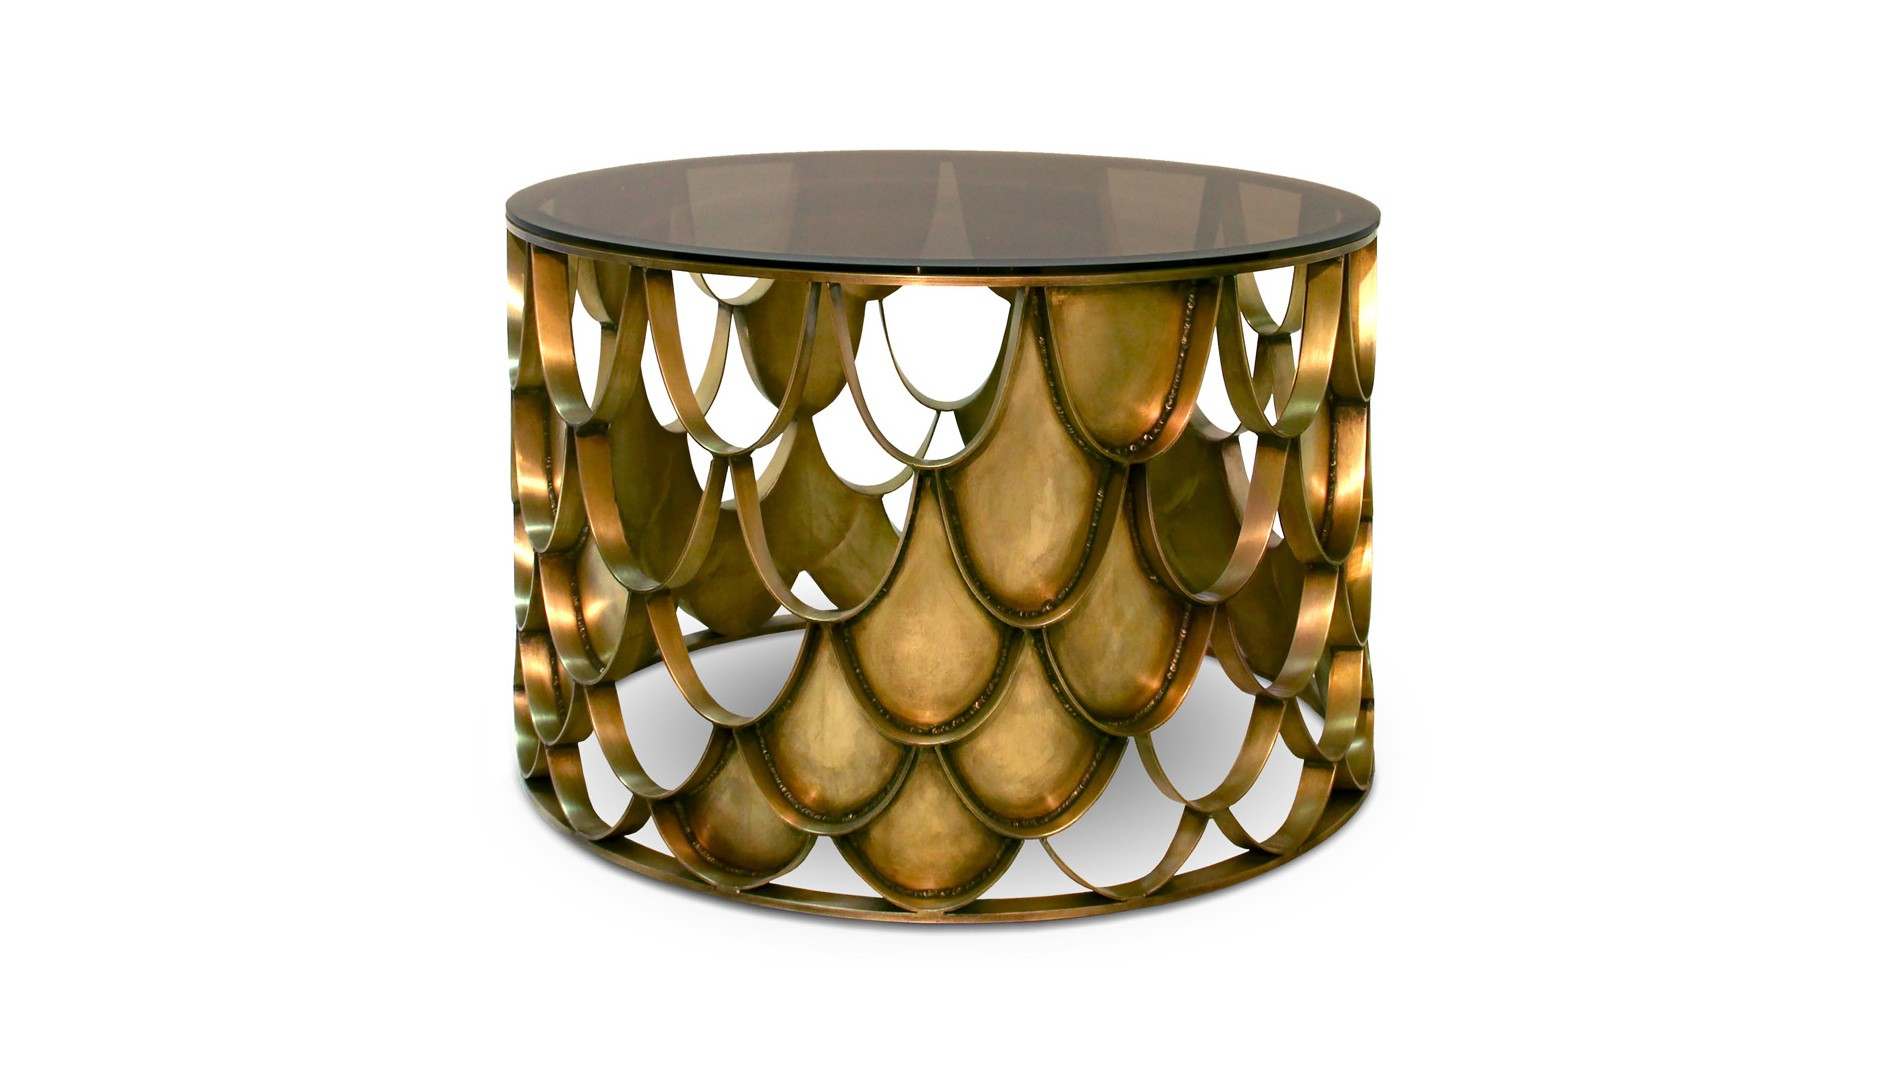 10 Stylish Ideas with Round Side Tables Design for Your Living Room9 round side tables 10 Stylish Ideas with Round Side Tables Design for Your Living Room 10 Stylish Ideas with Round Side Tables Design for Your Living Room9